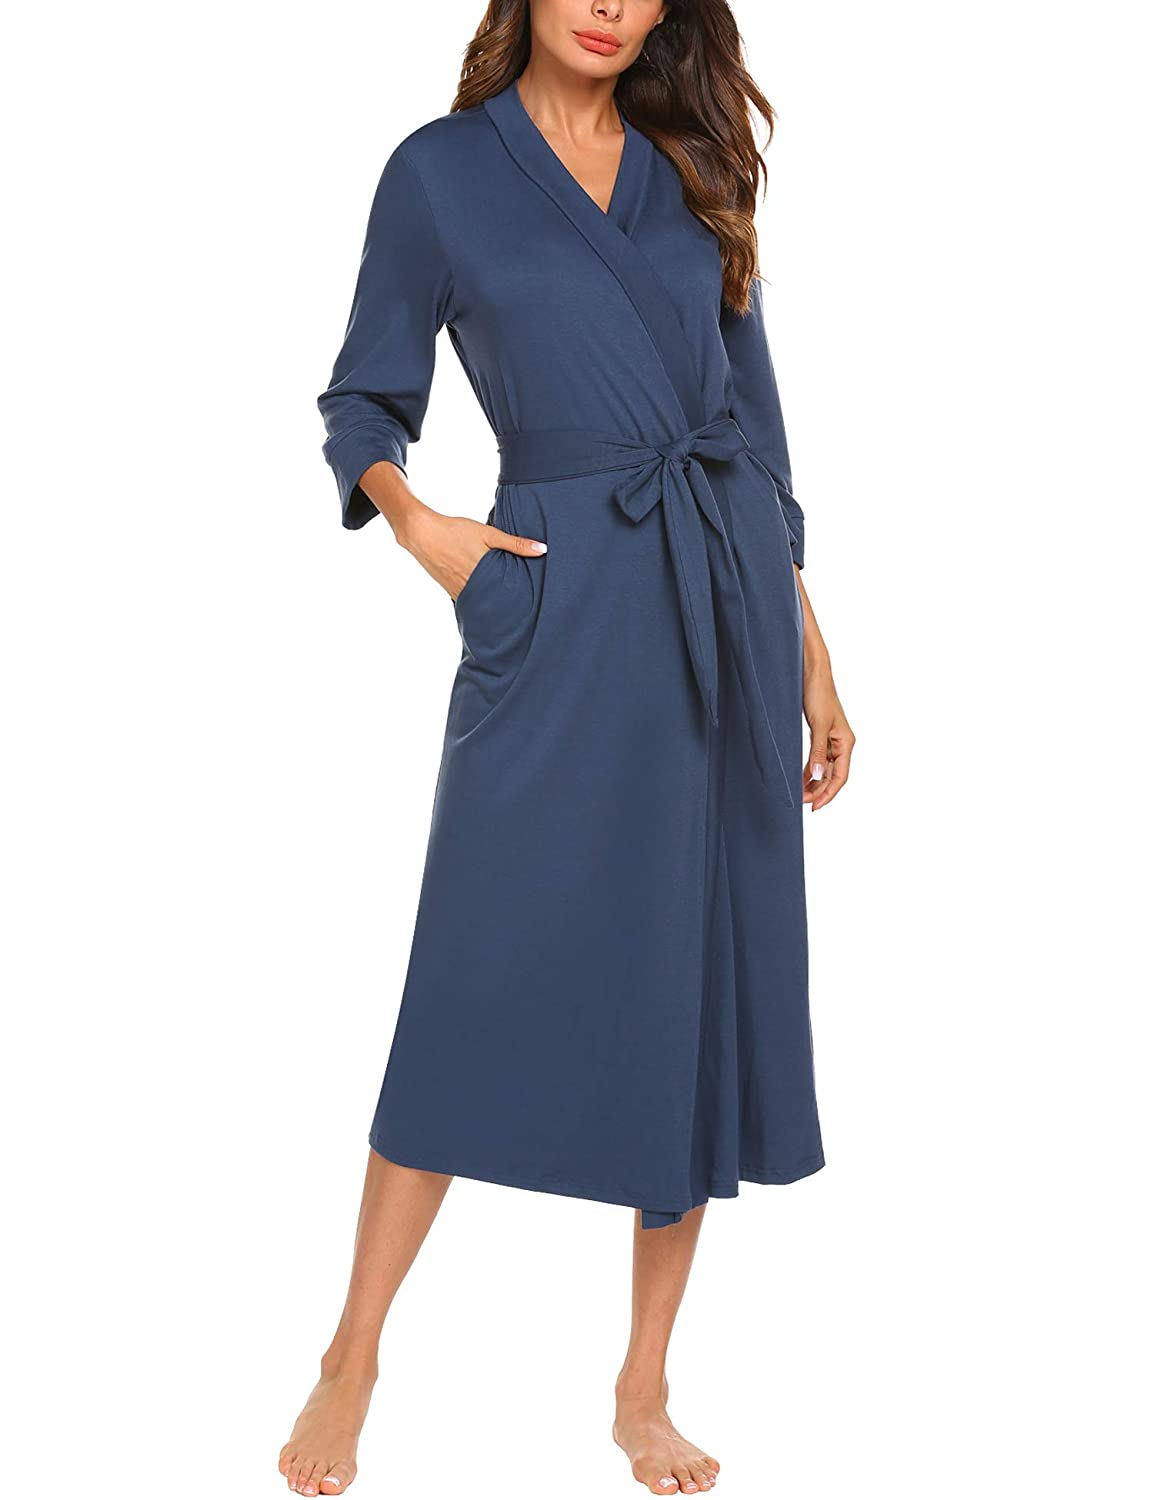 MAXMODA SLEEPWEAR Blue レディース B07G53T29L Blue Small|Long-navy Blue Long-navy Small Blue Small, ラックタウン-収納用品の店-:2abbd9d8 --- office.eforward2.ferraridentalclinic.com.lb